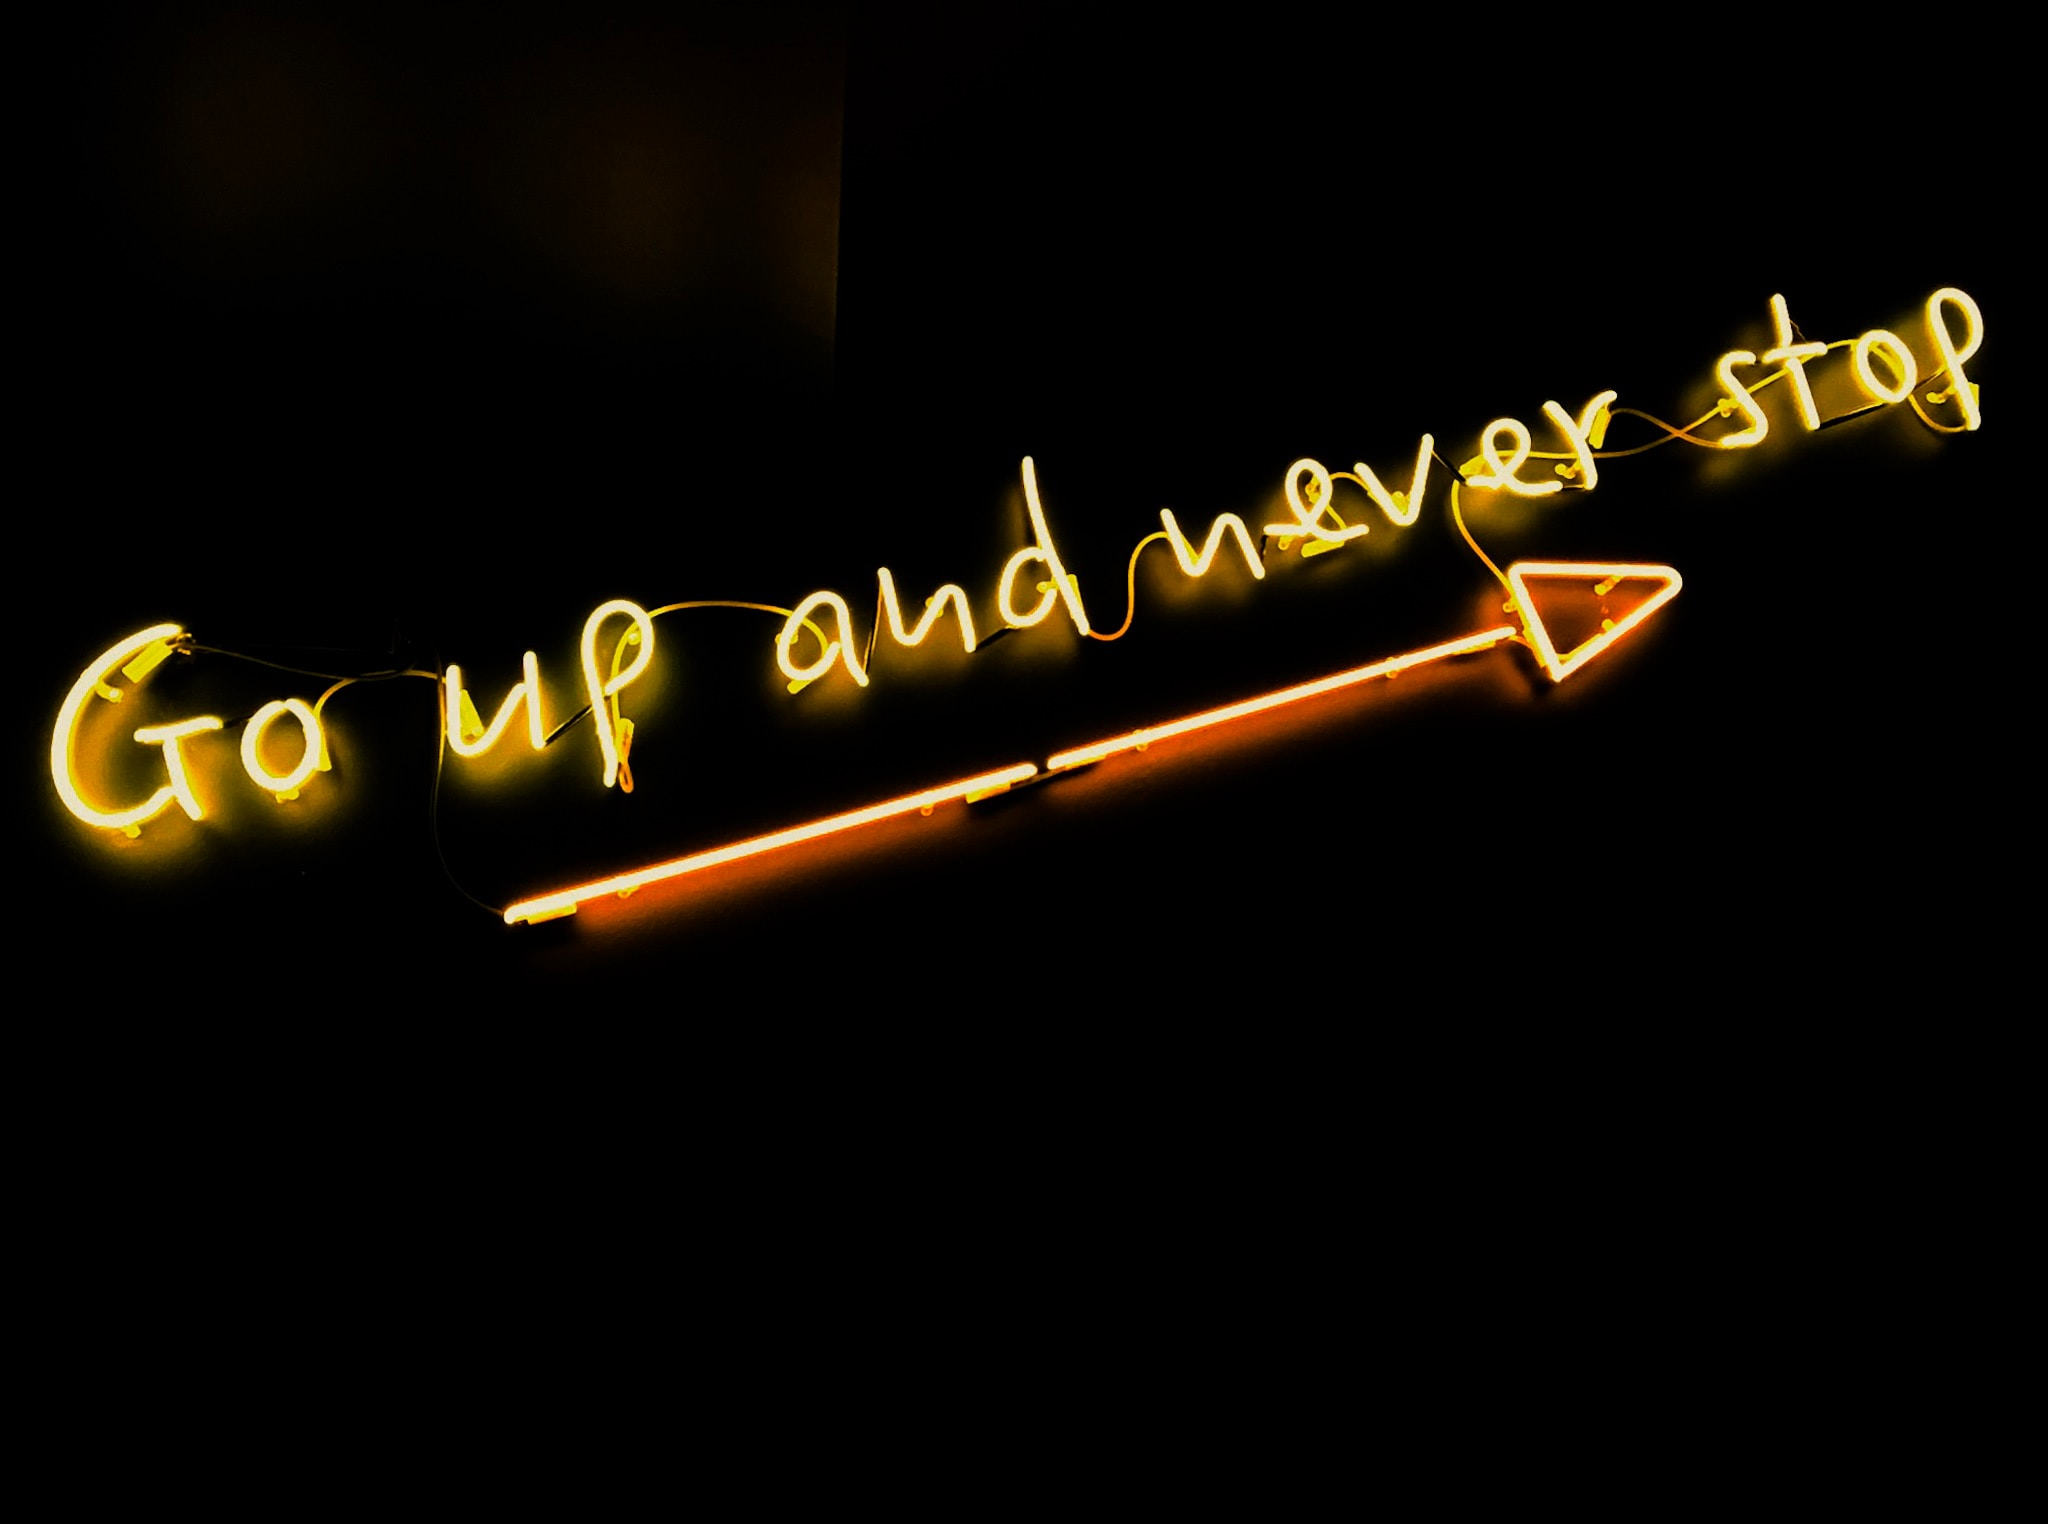 Go up and never stop sign